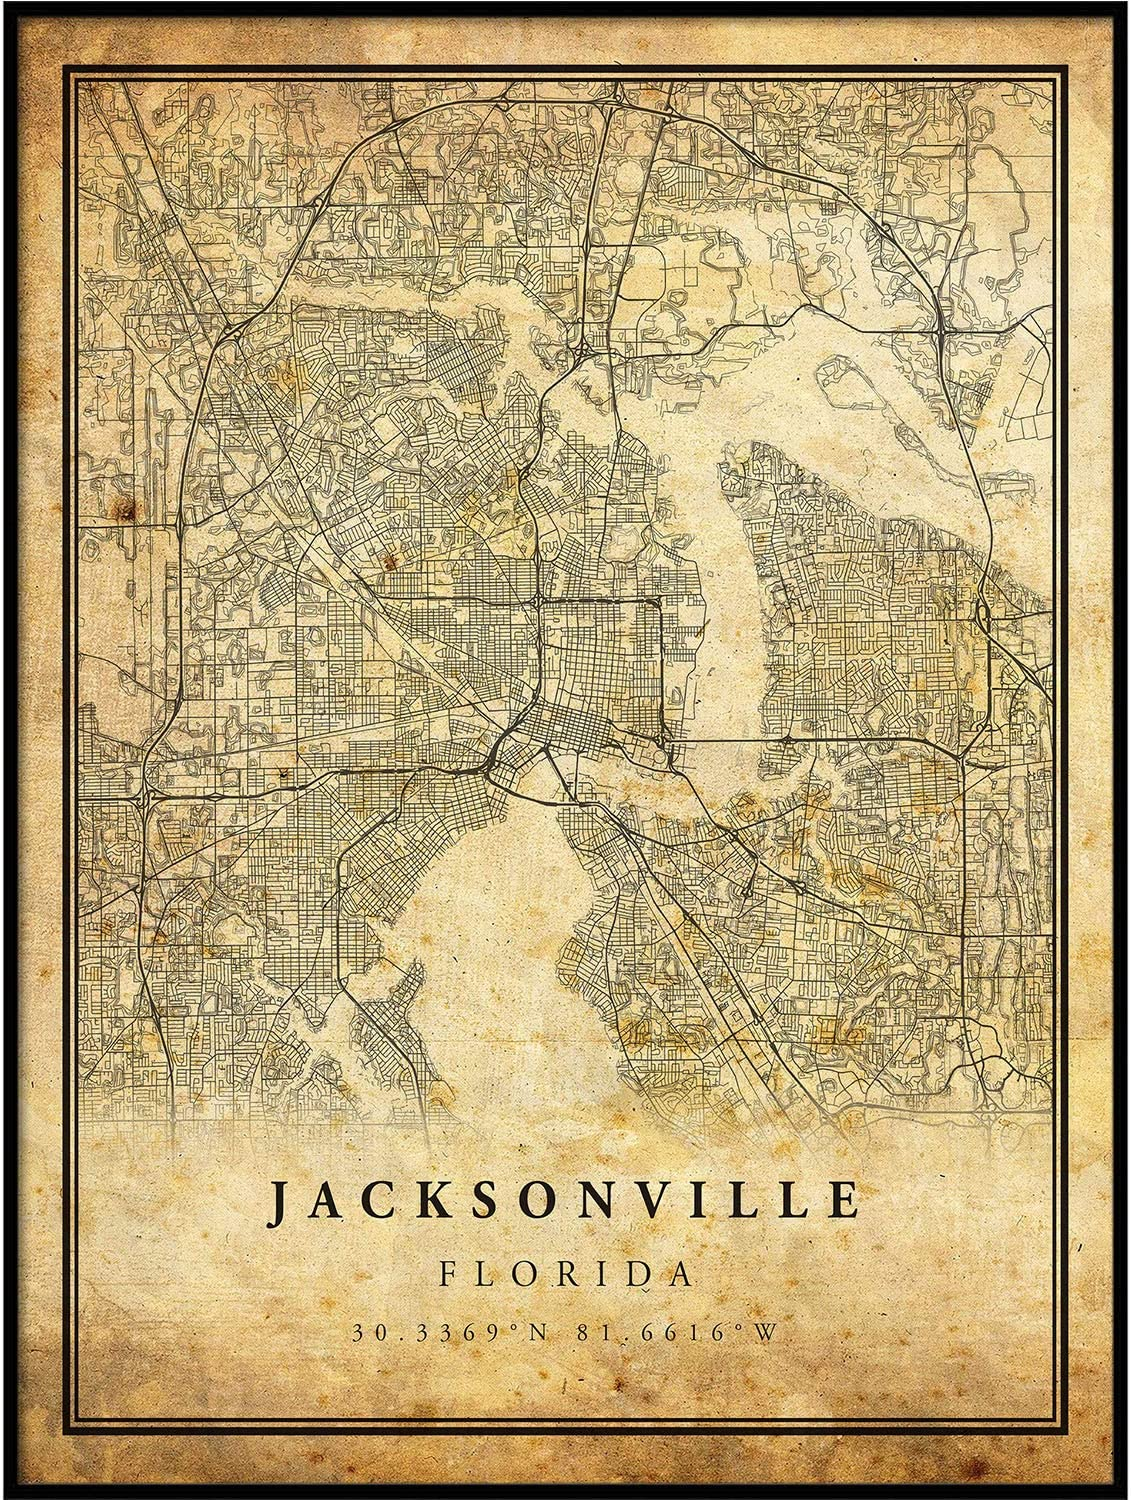 Jacksonville map Vintage Style Poster Print   Old City Artwork Prints   Antique Style Home Decor   Florida Wall Art Gift   high res Vintage map 11x14